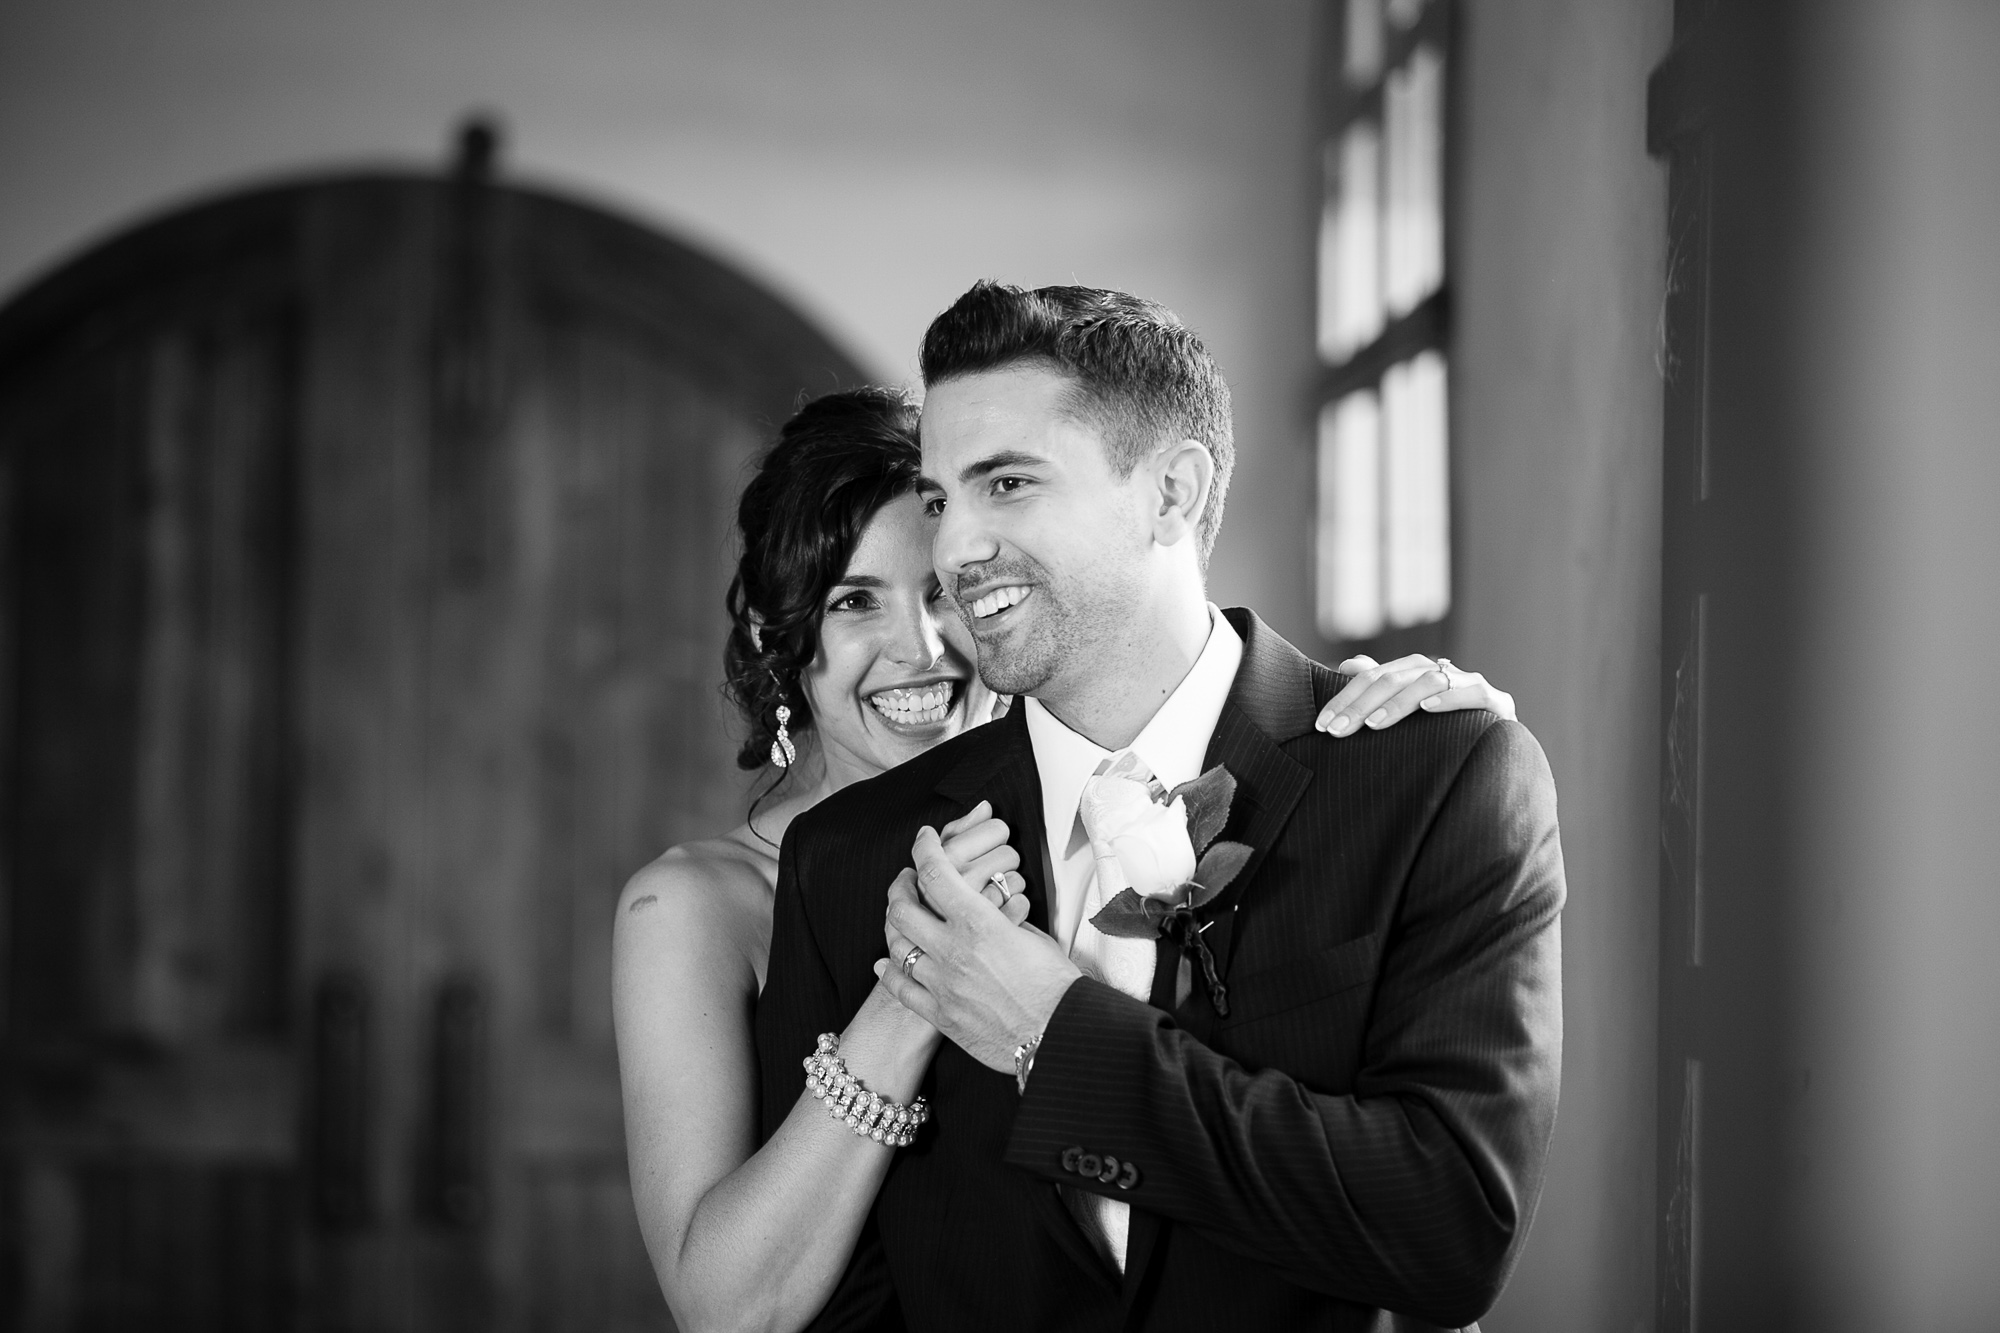 Best Wedding Photographer in Somerville nj - Jenna Perfette Photography